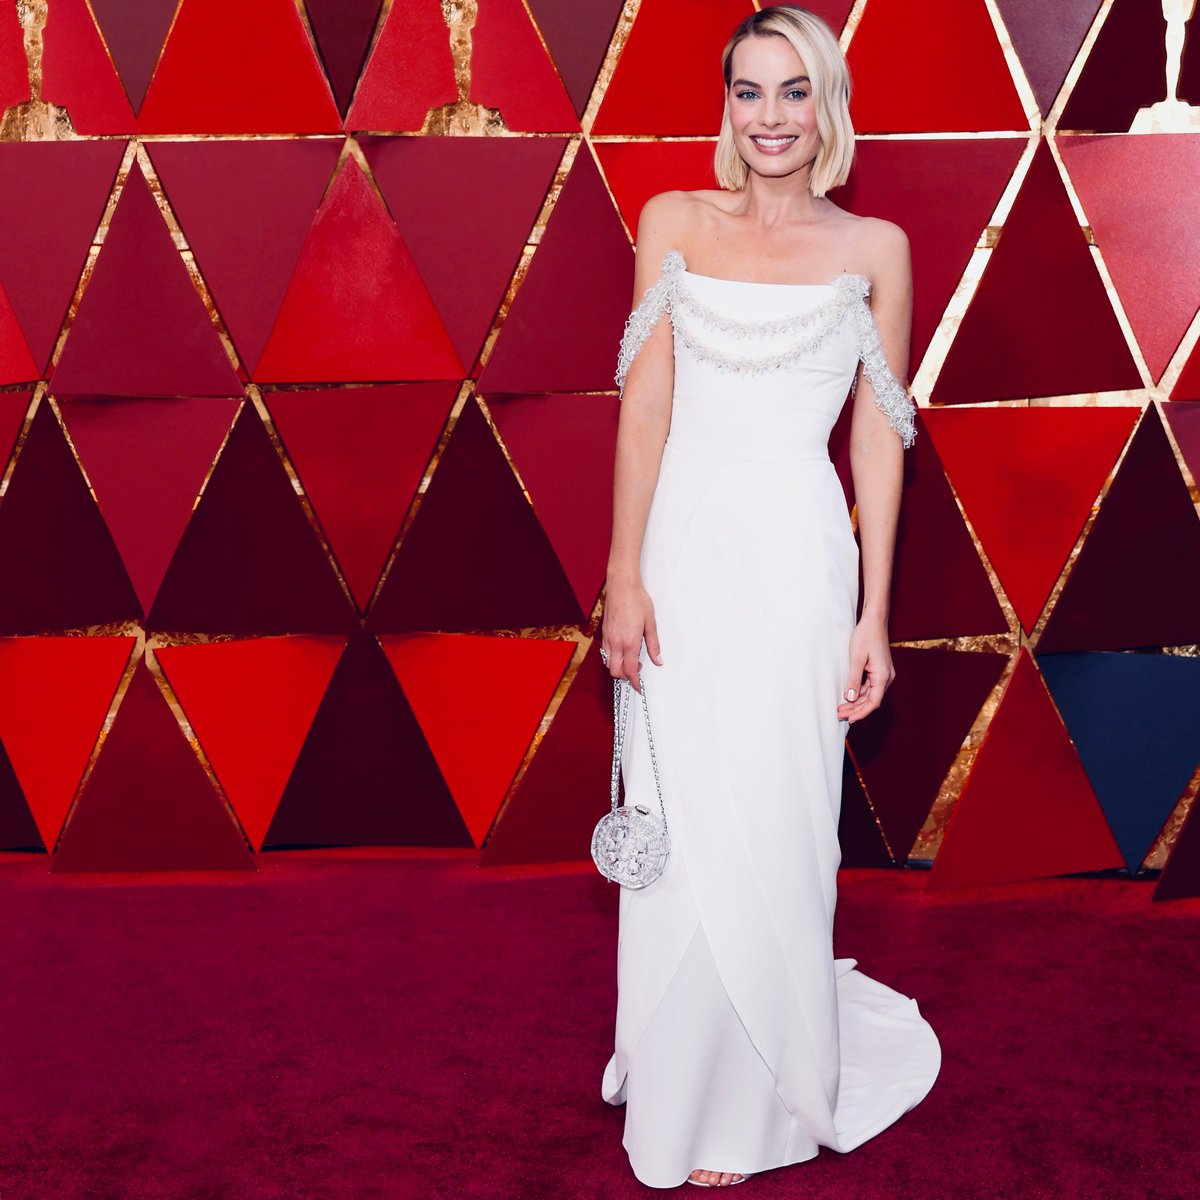 At the #Oscars — House ambassador @MargotRobbie wearing a #CHANELHauteCouture dress on the red carpet at last night's 90th Academy Awards. #CHANELMakeUp #CHANELFineJewelry